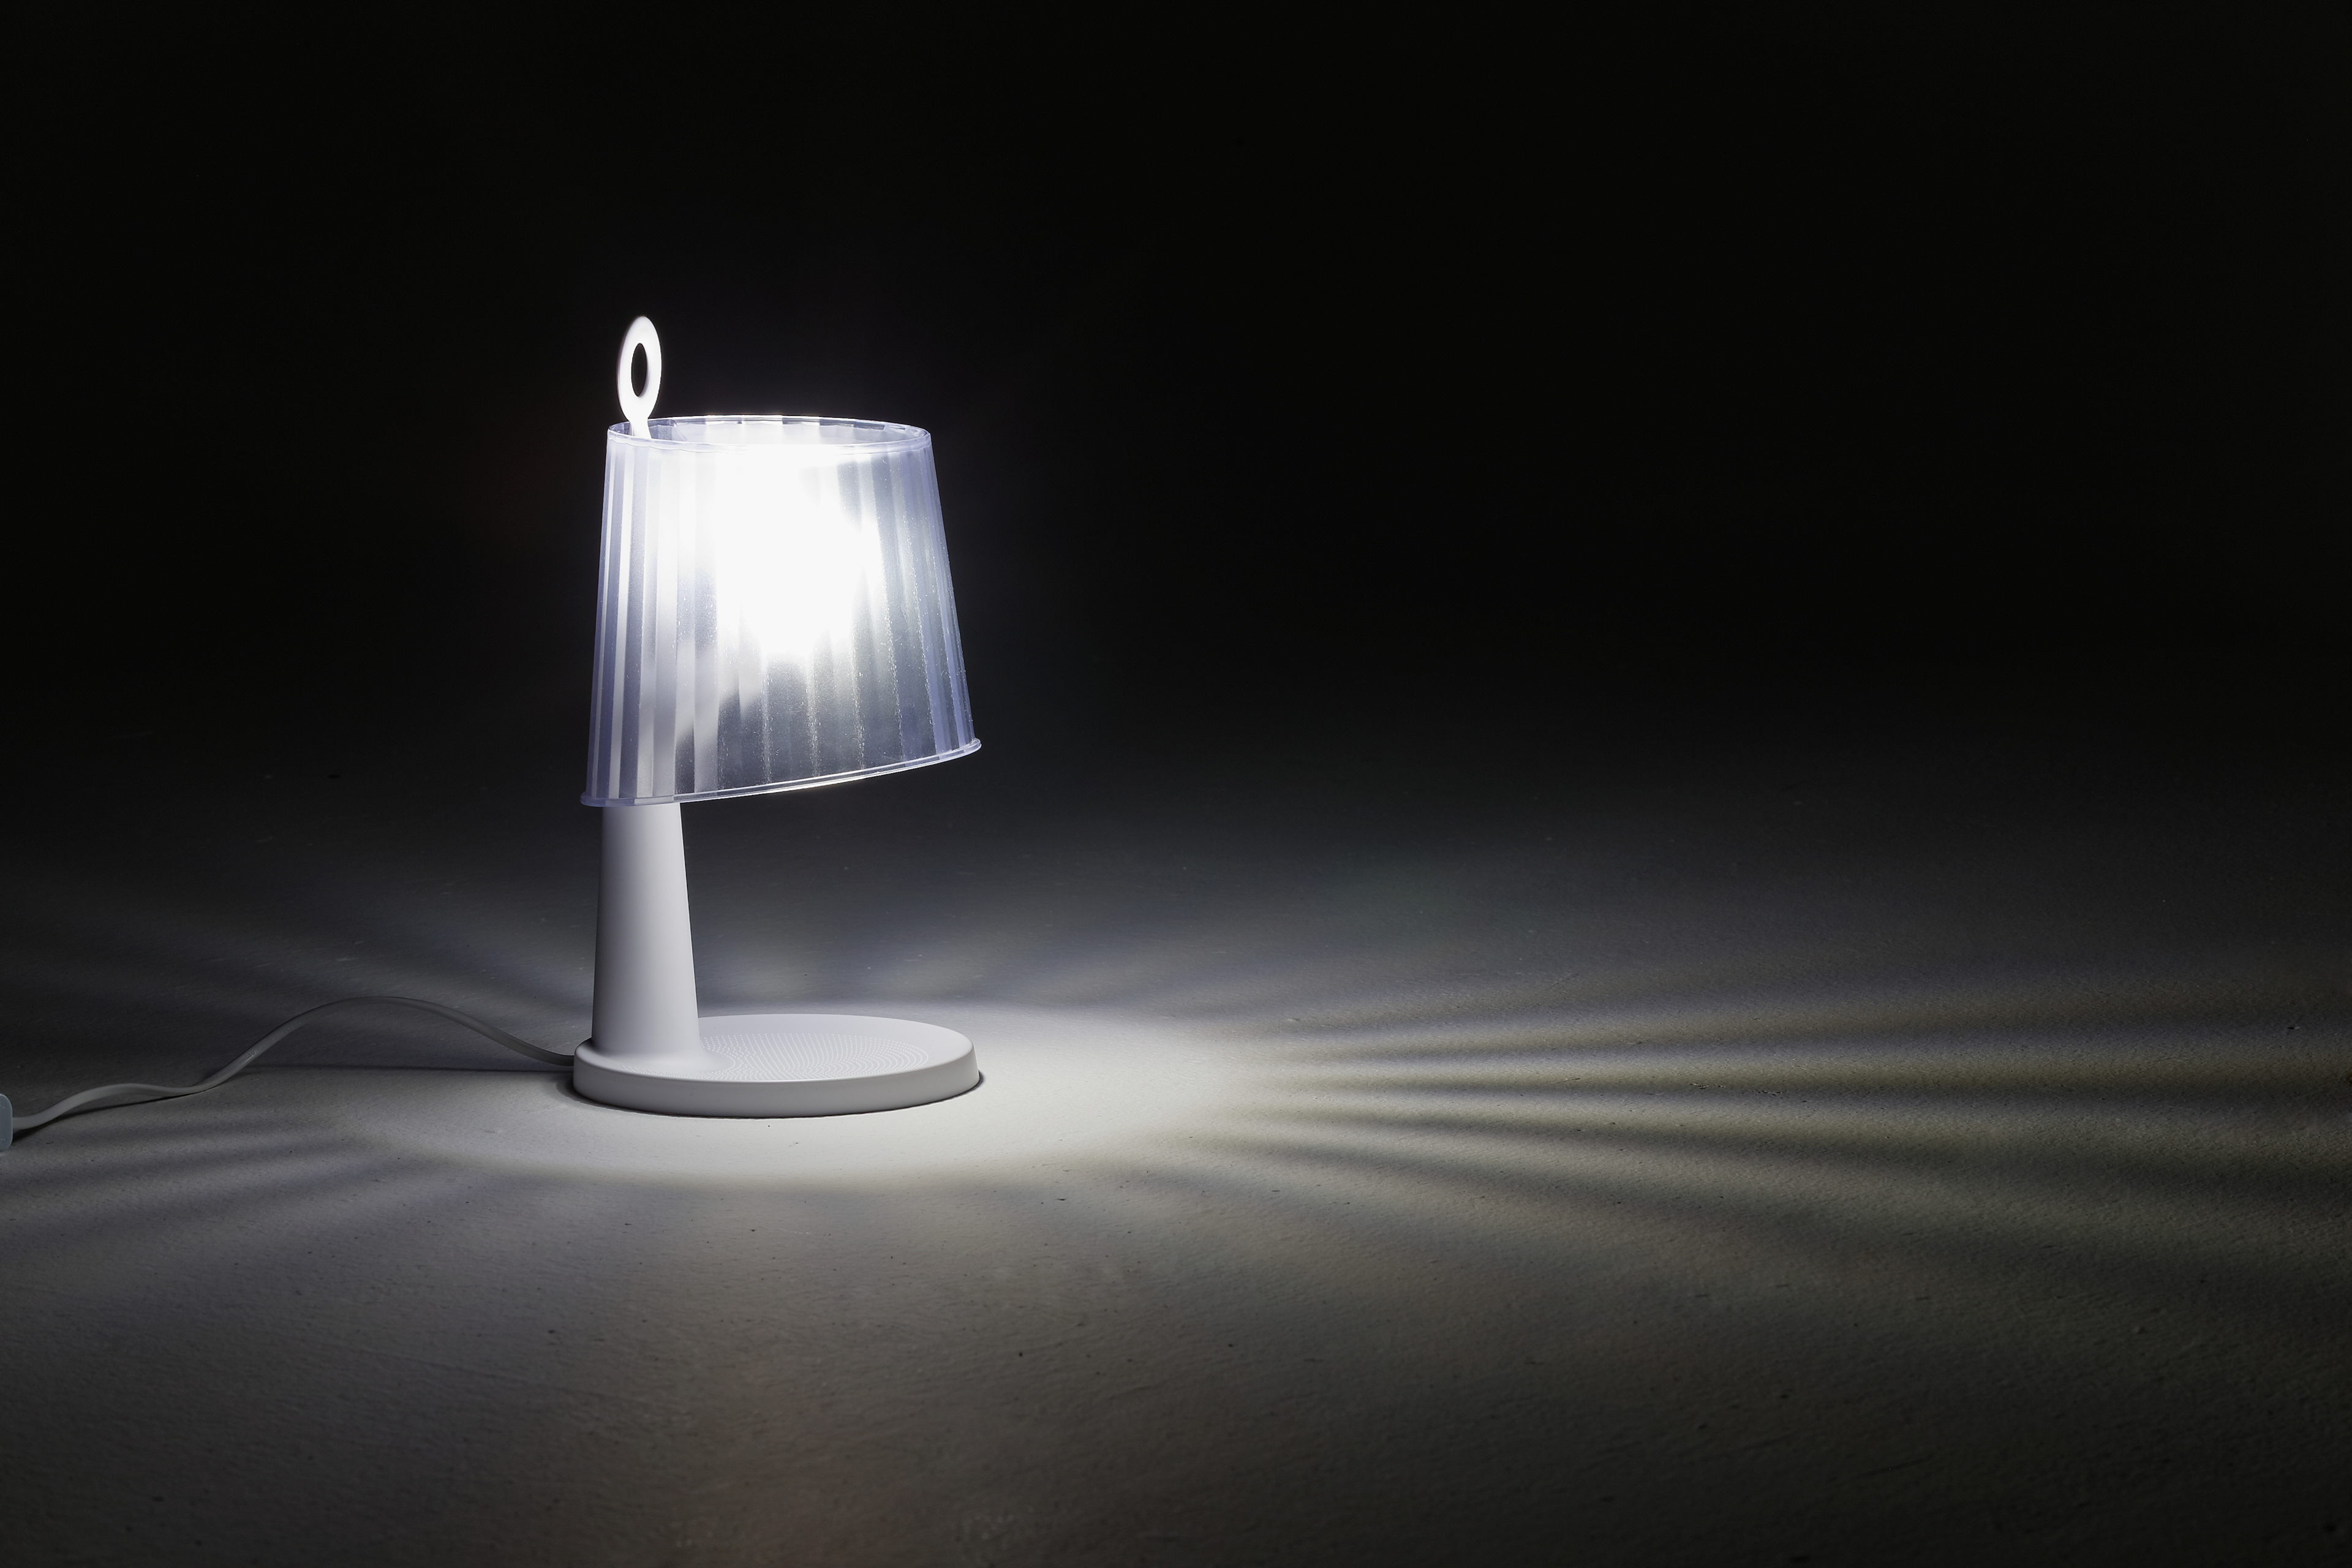 subdued lighting. Subdued Lighting. The Lamp Uses Different Materials And Transparency Effects To Create A Coloured, Lighting